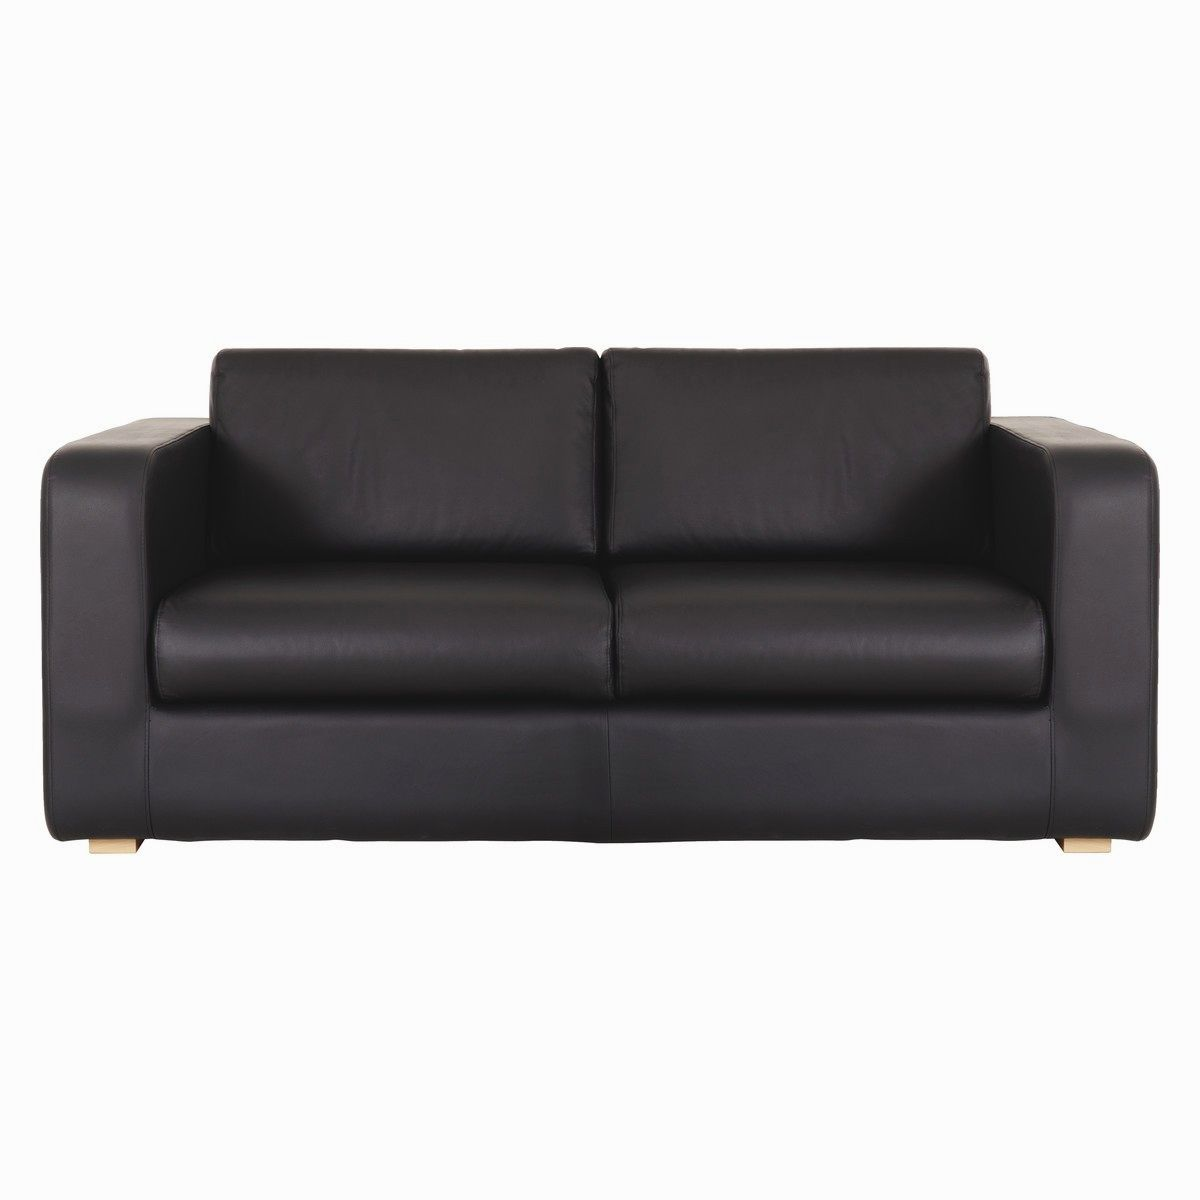 amazing bonded leather sofa photo-Amazing Bonded Leather sofa Online